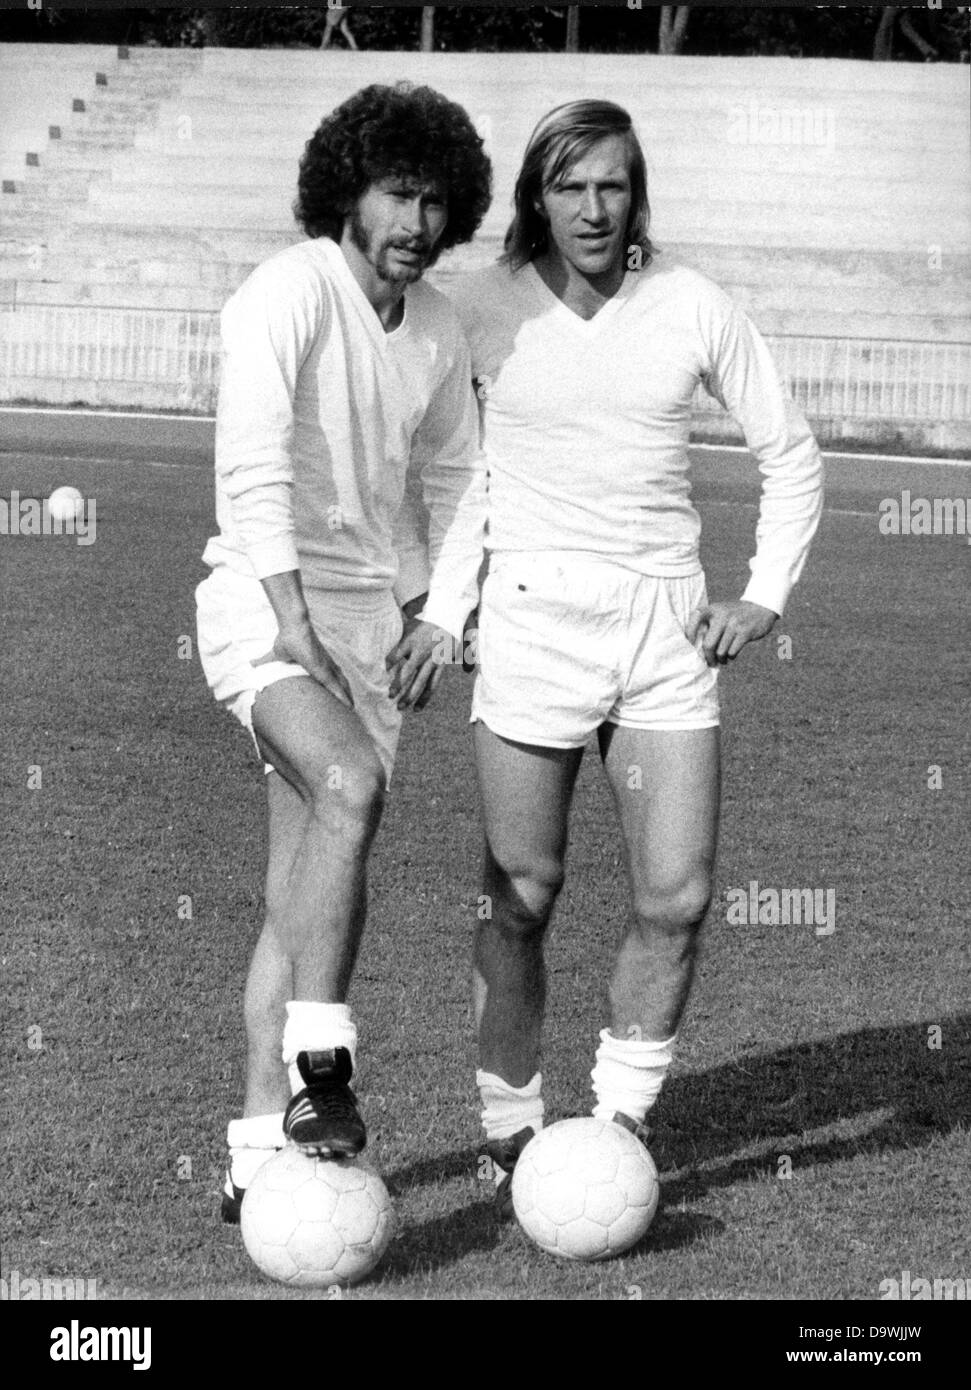 German players Paul Breitner l and Günter Netzer r play for